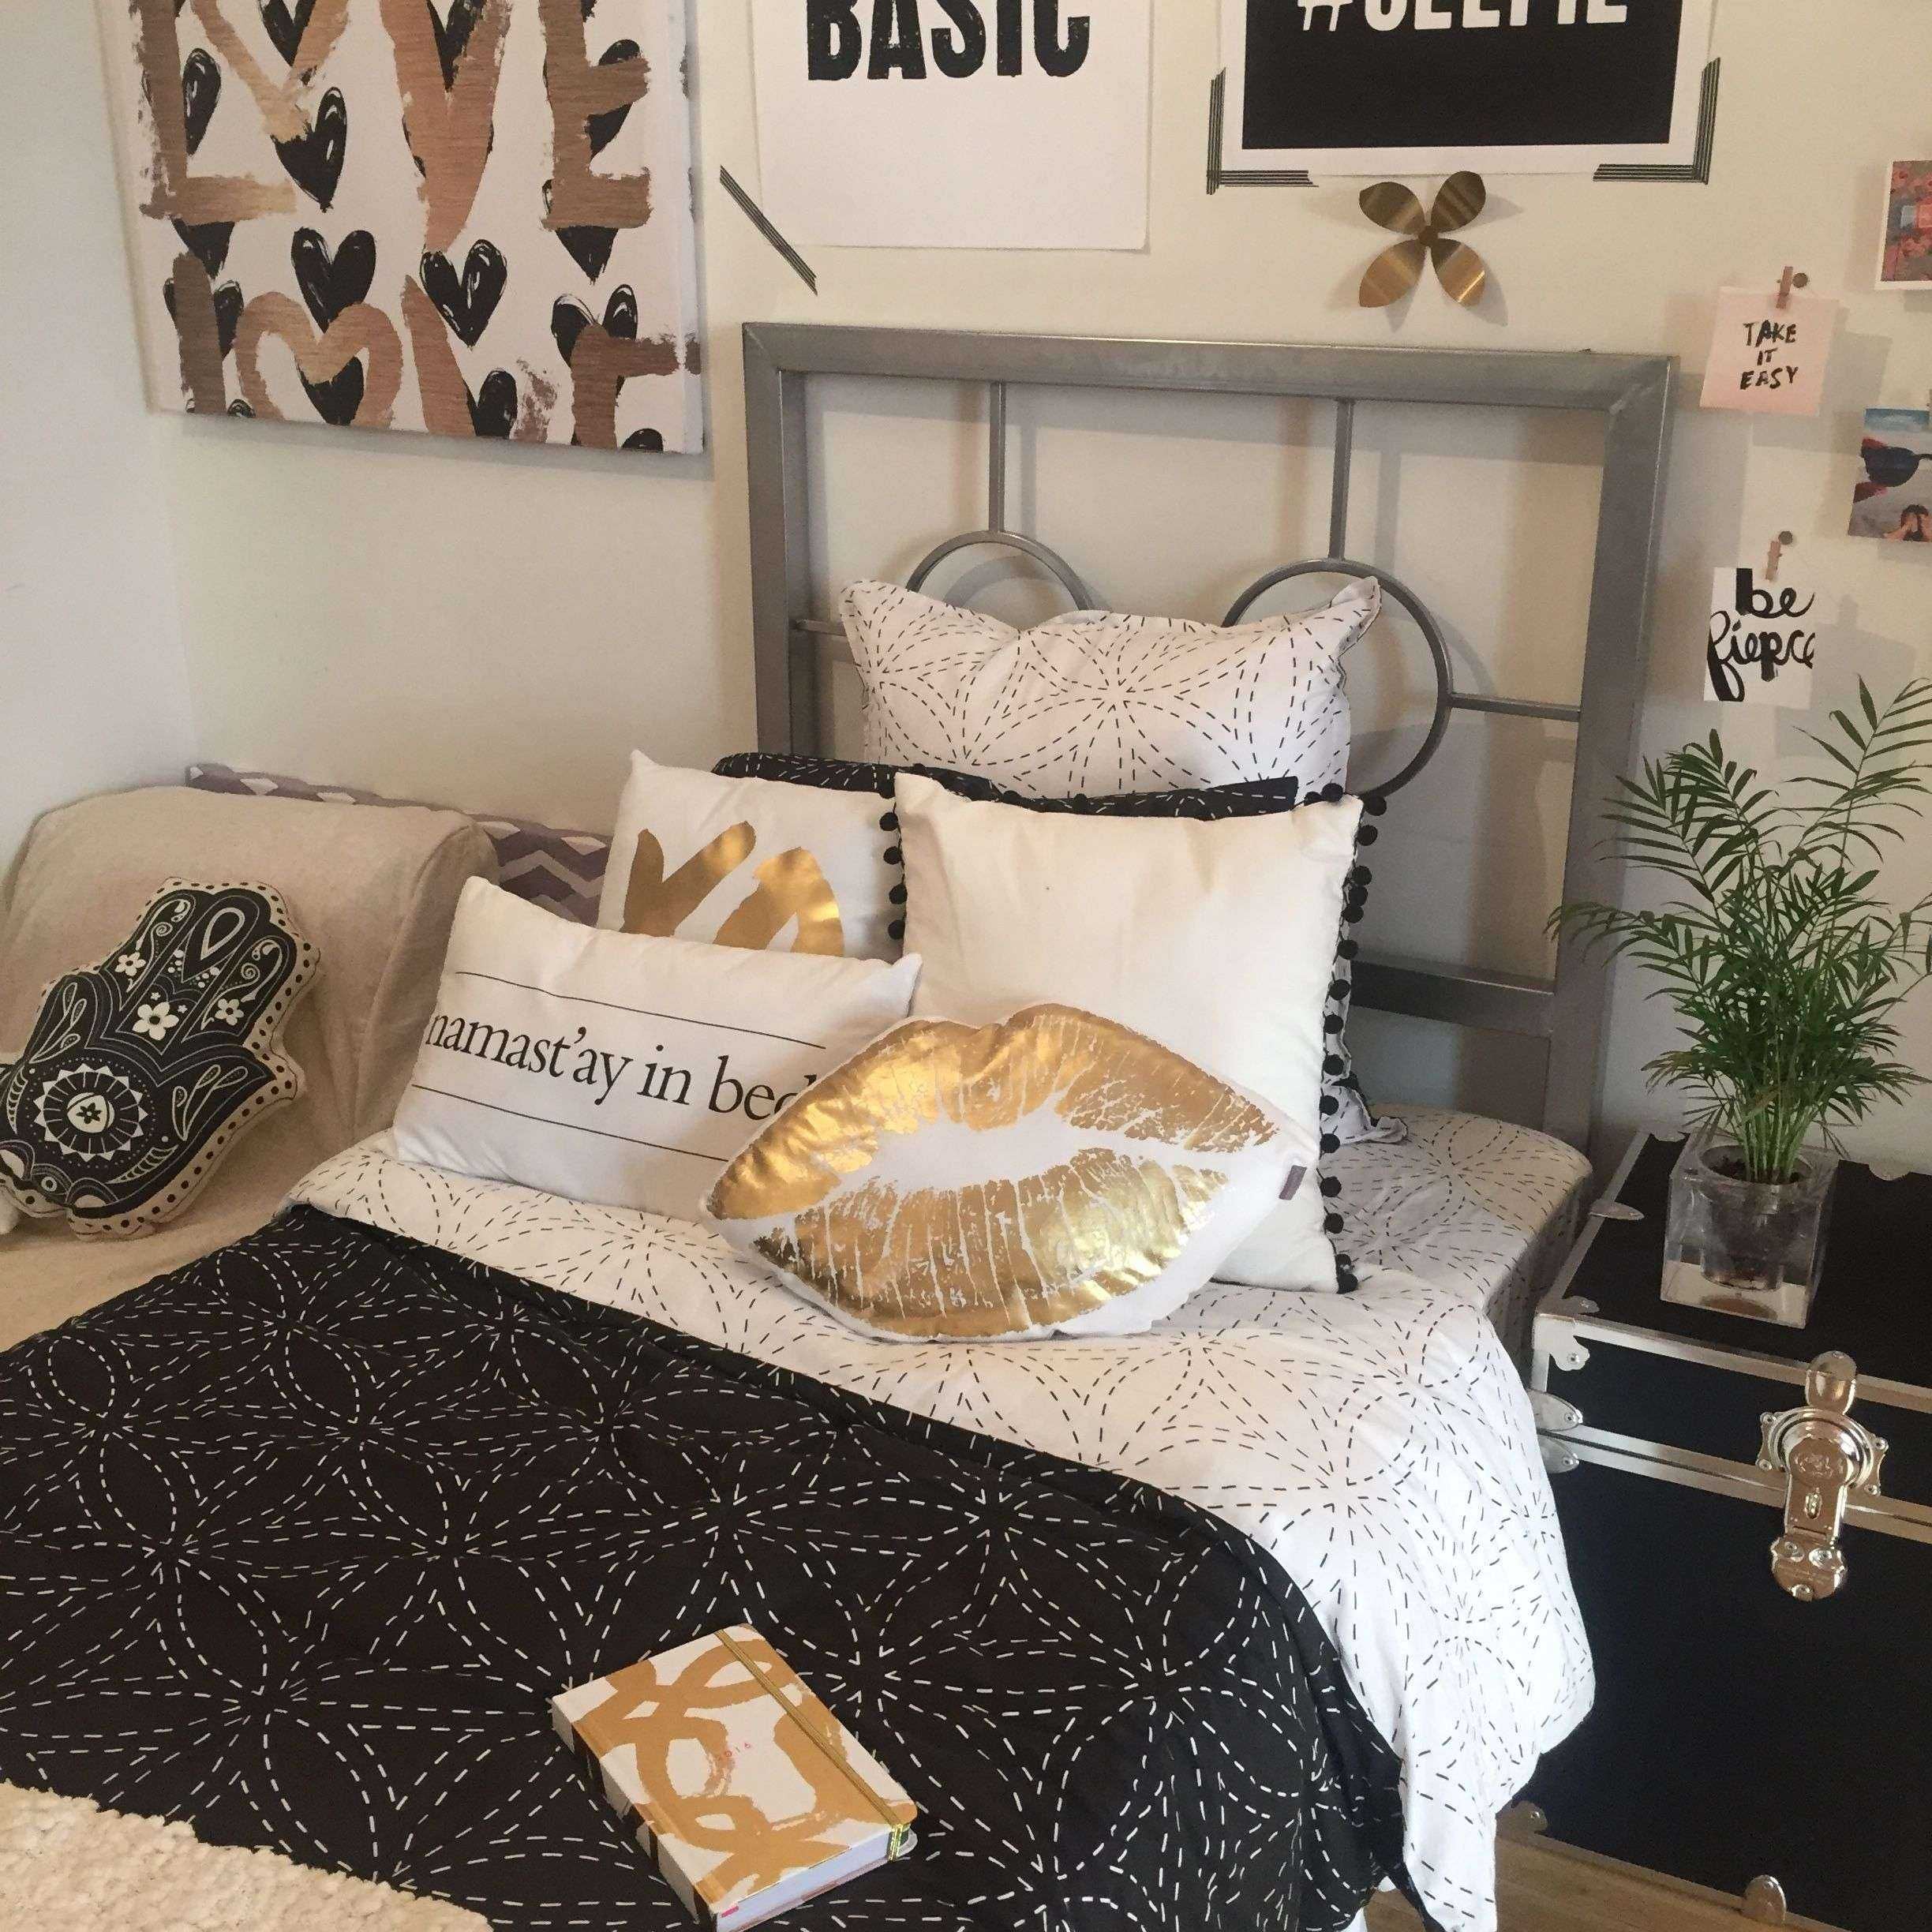 Rose Gold 13 Year Old Cute Room Decor Lovely Rose Gold 13 Year Old Cute Room Decor Cute Simple Room Dec White Gold Bedroom Gold Living Room Gold Room Decor